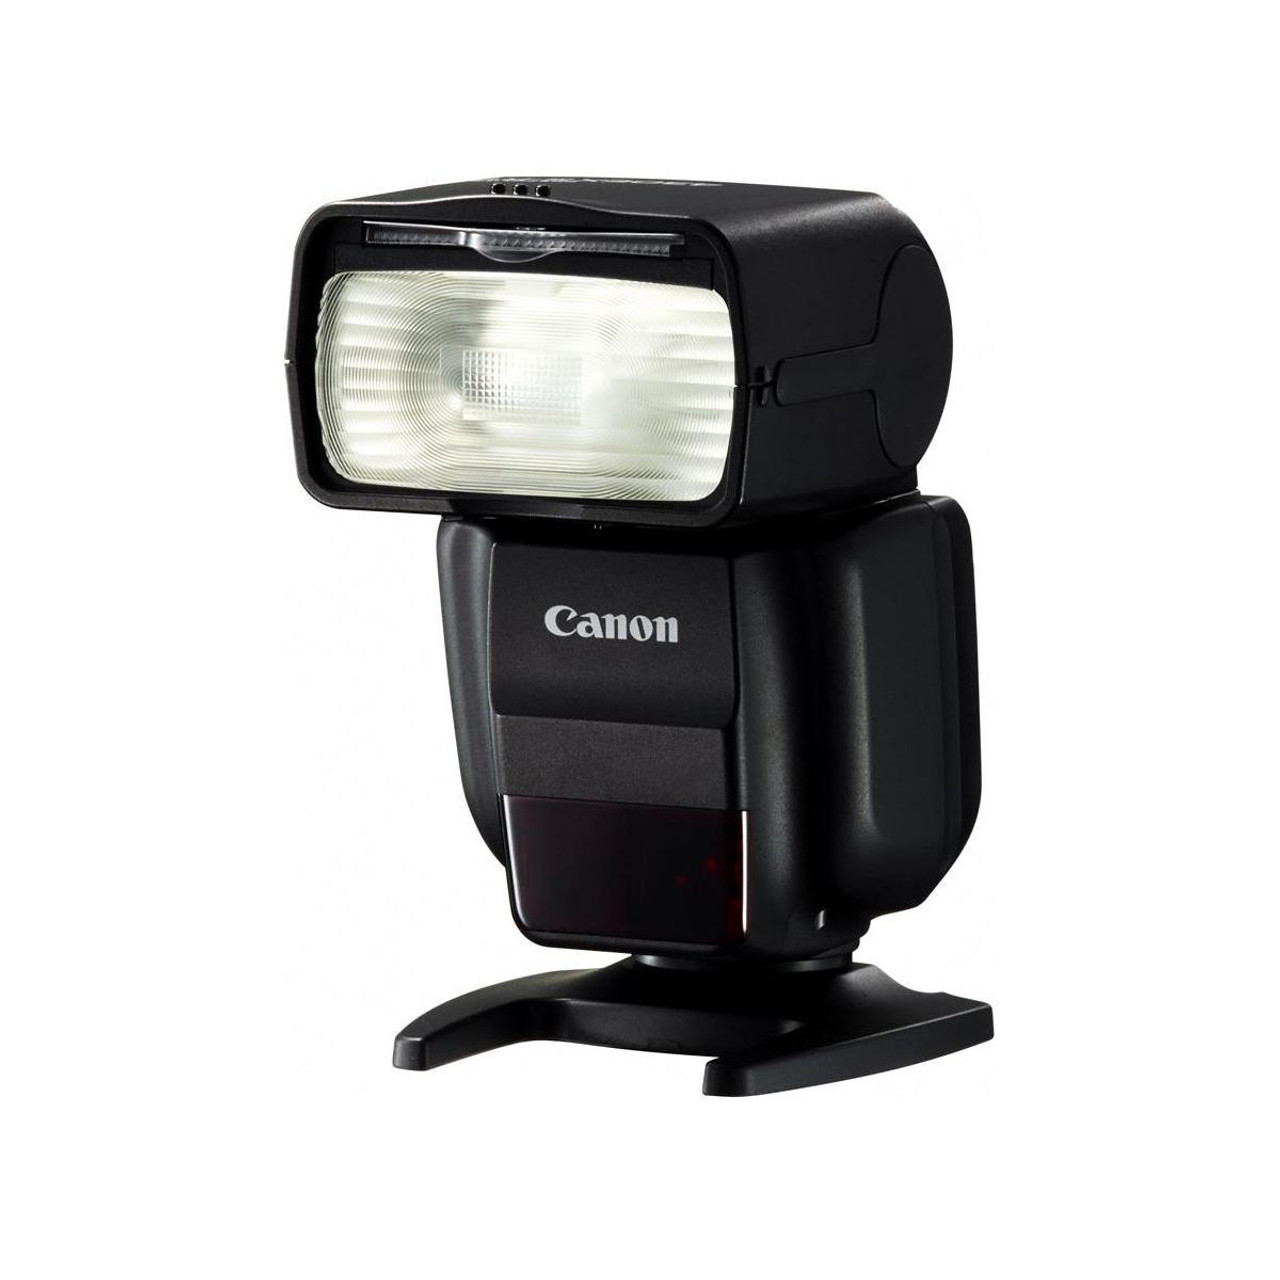 canon speedlite 430ex iii rt guide number 141 at iso 100 24 105mm rh bedfords com canon 430ex instructions canon 430ex guide number chart